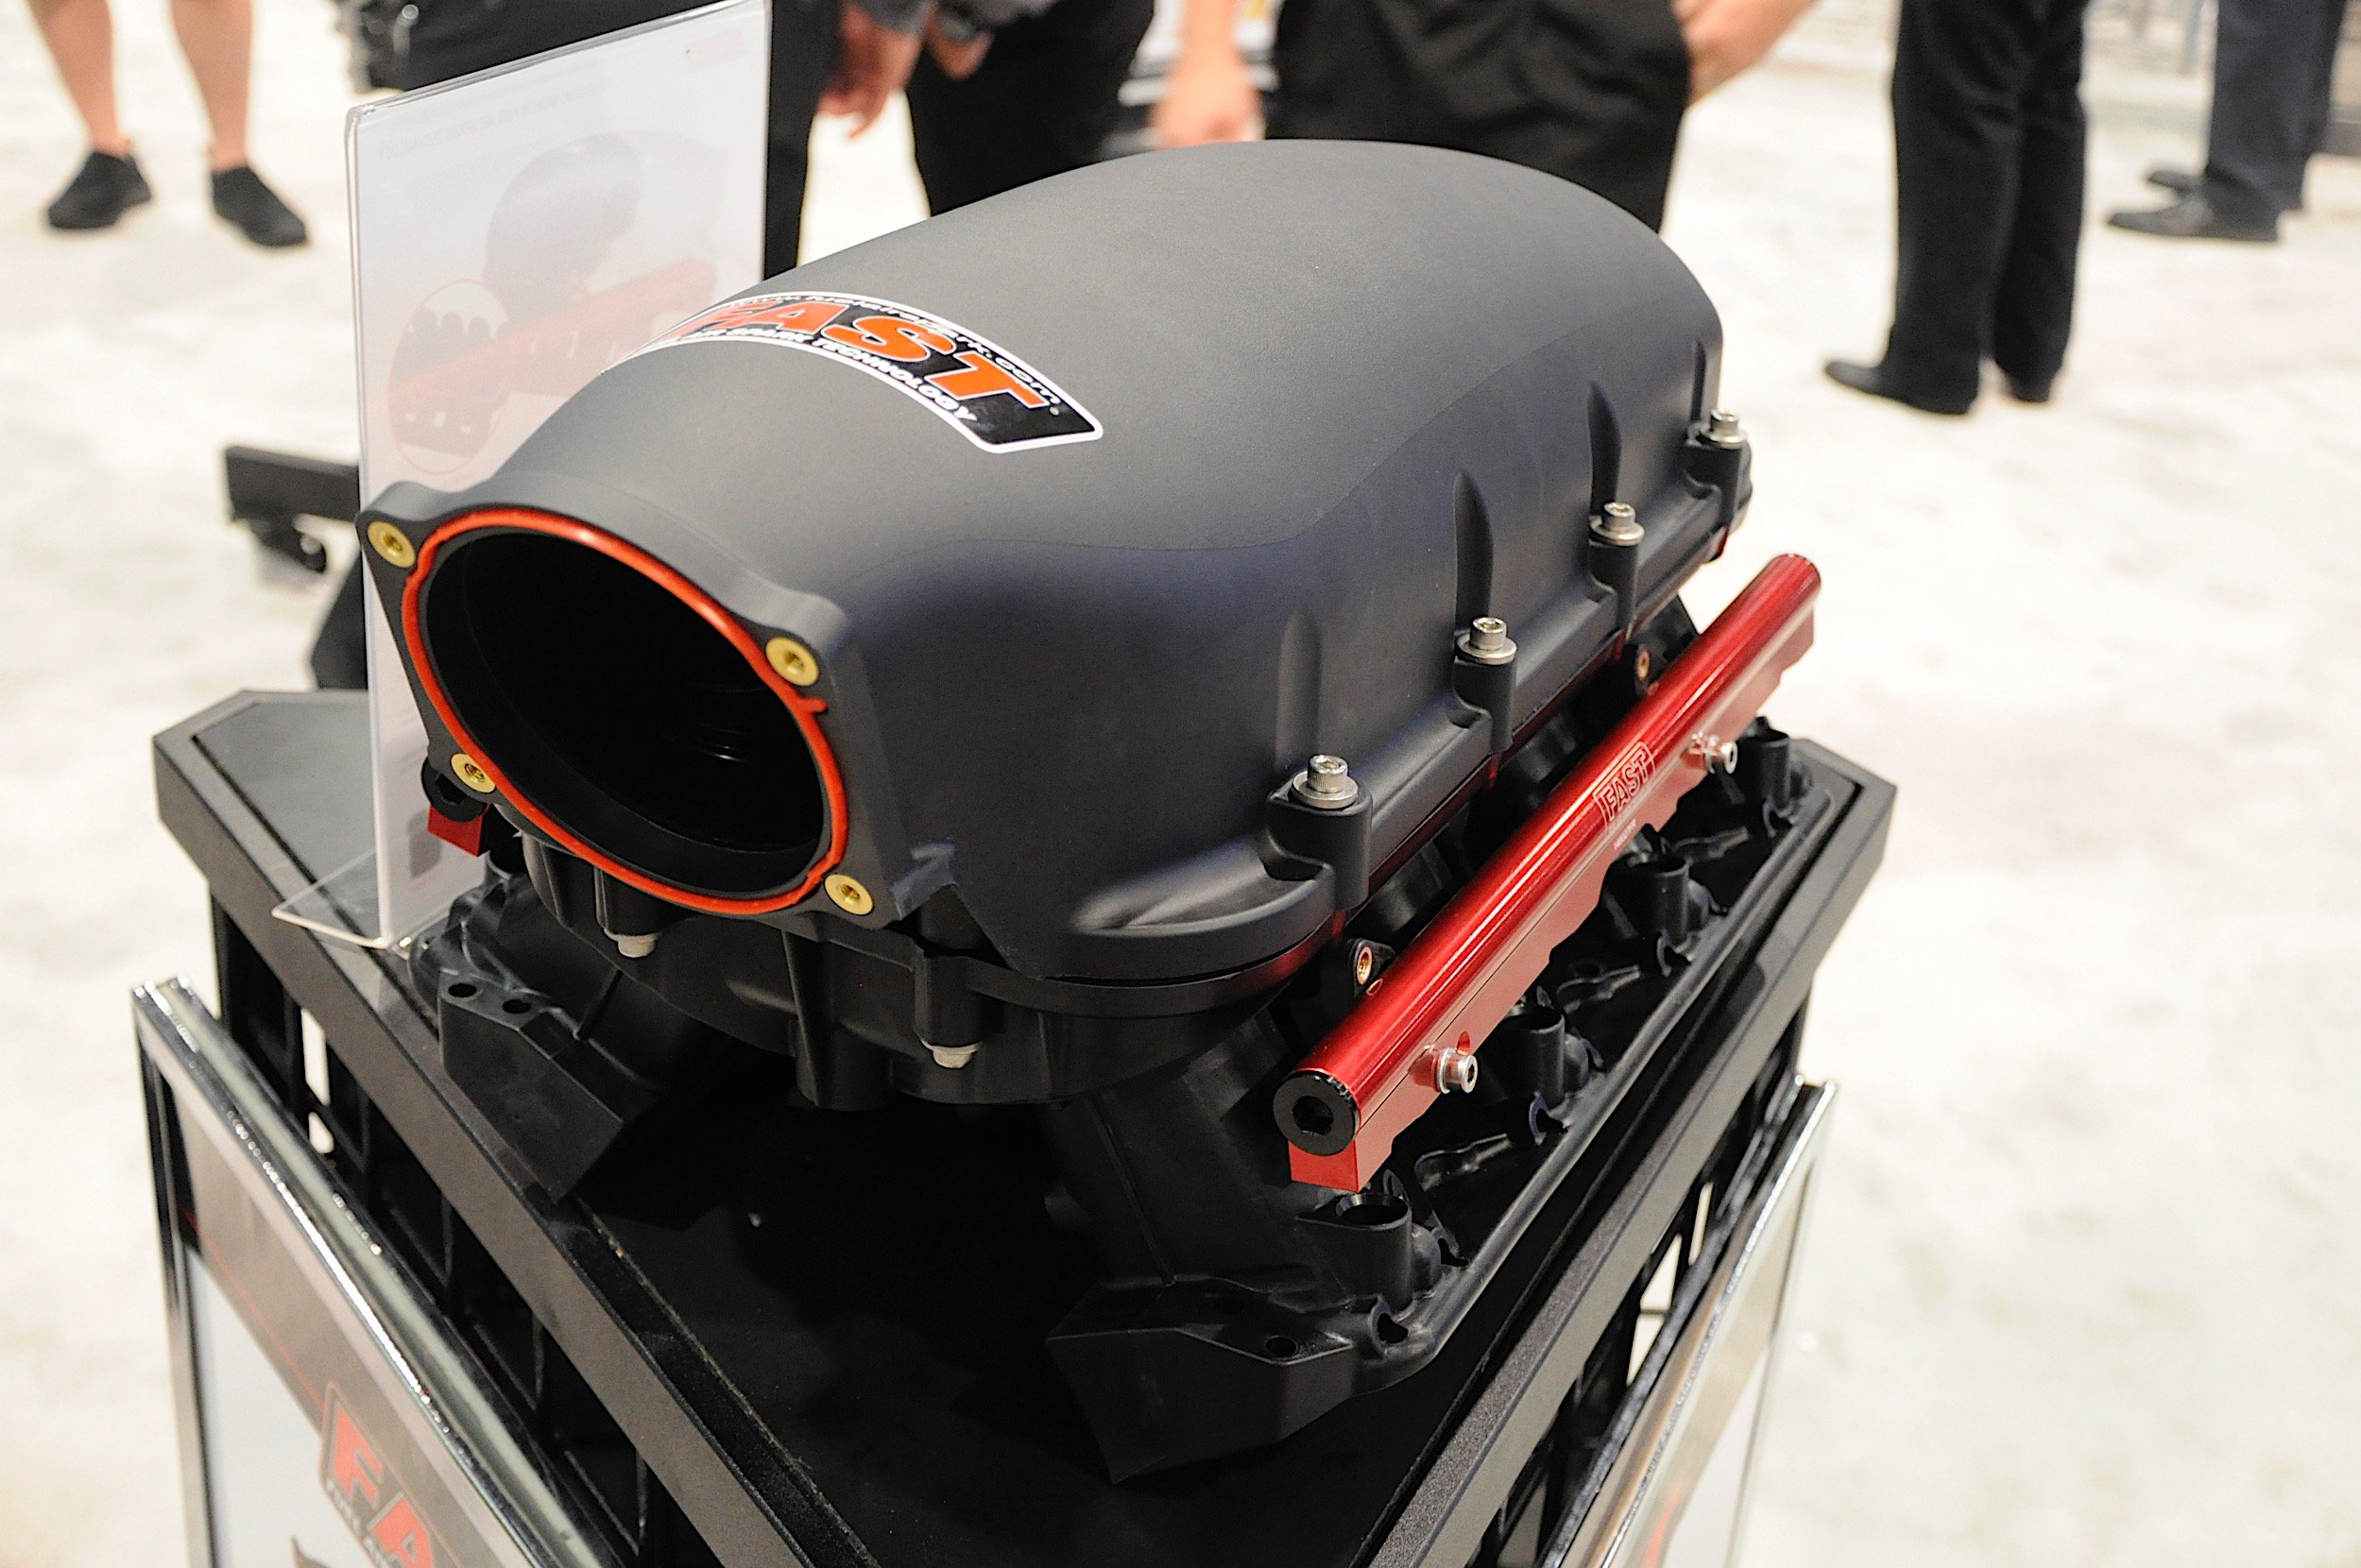 A New Contender: The LSXHR 103mm High-Rise Intake From FAST